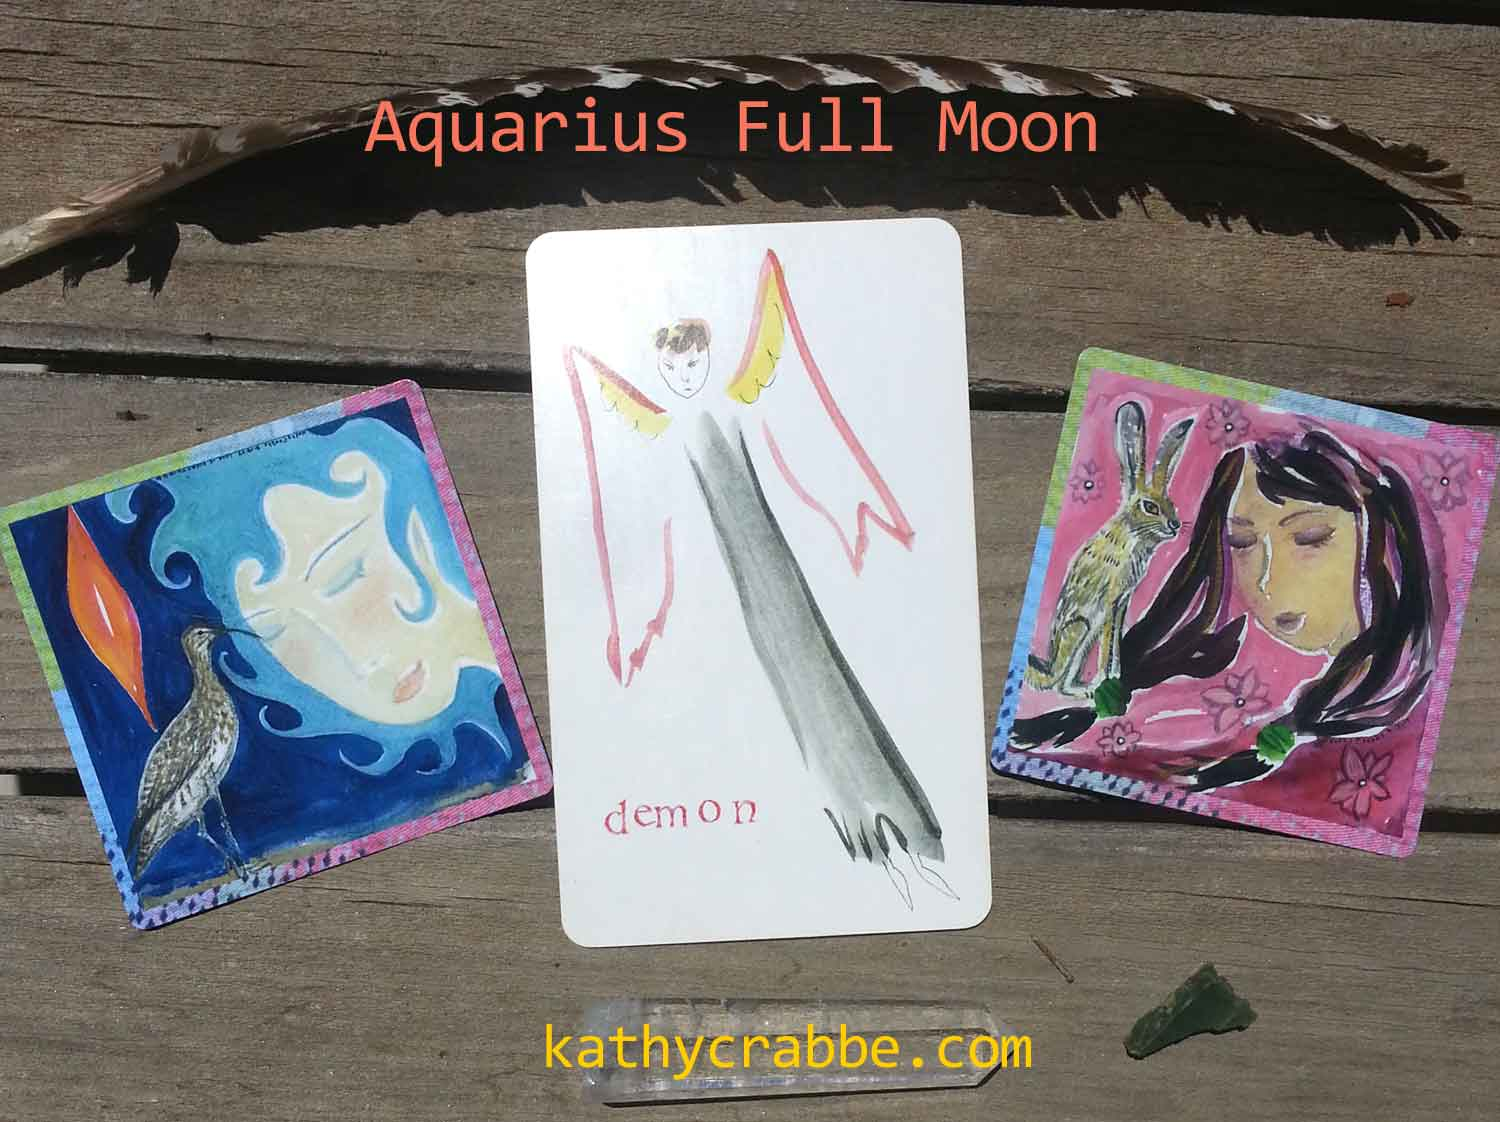 Aquarius-Full-Moon-Cards by Kathy Crabbe